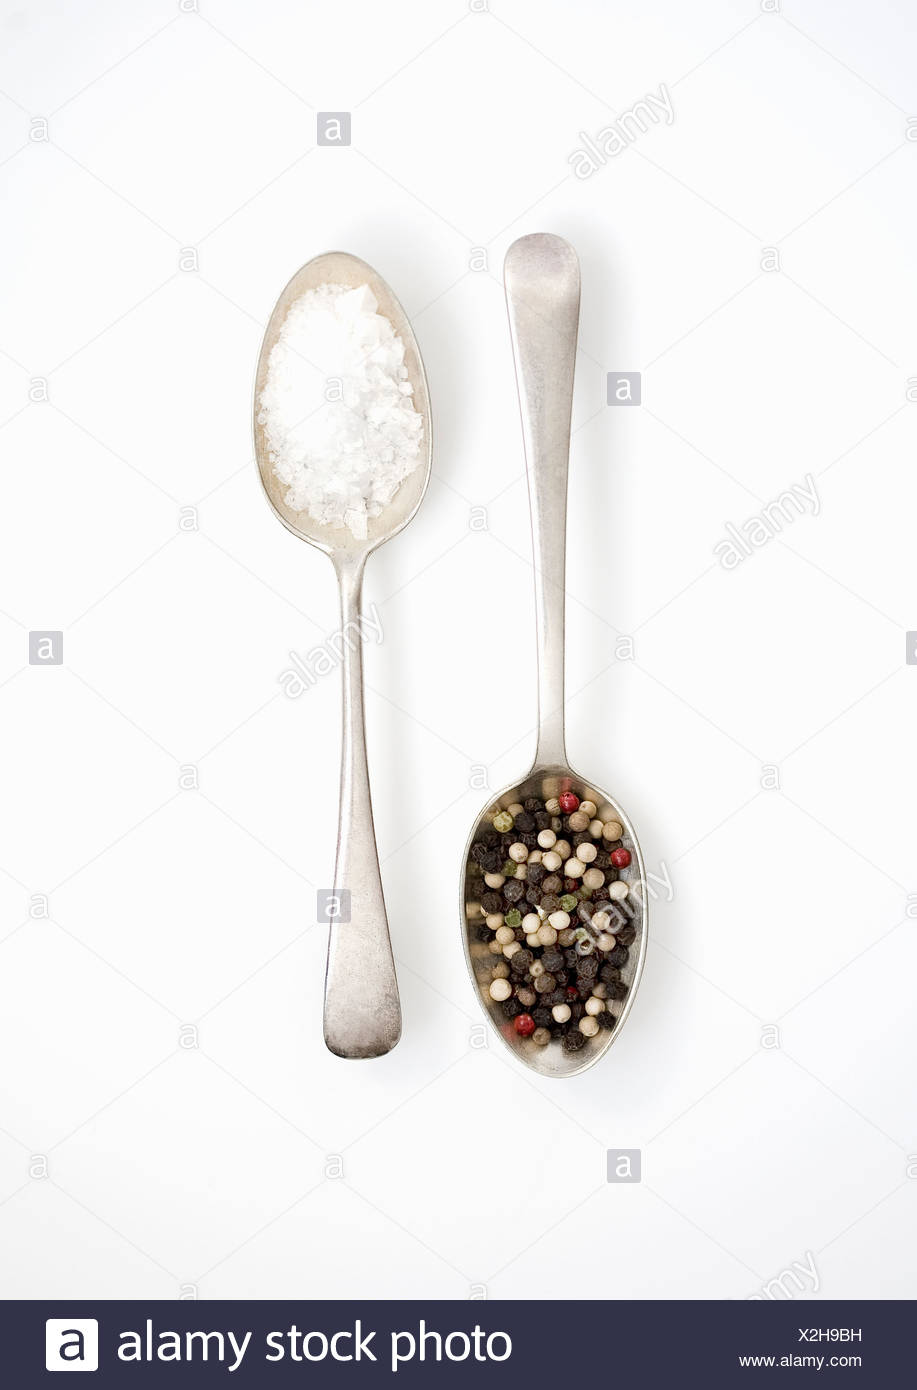 Spoonfuls of salt and pepper - Stock Image